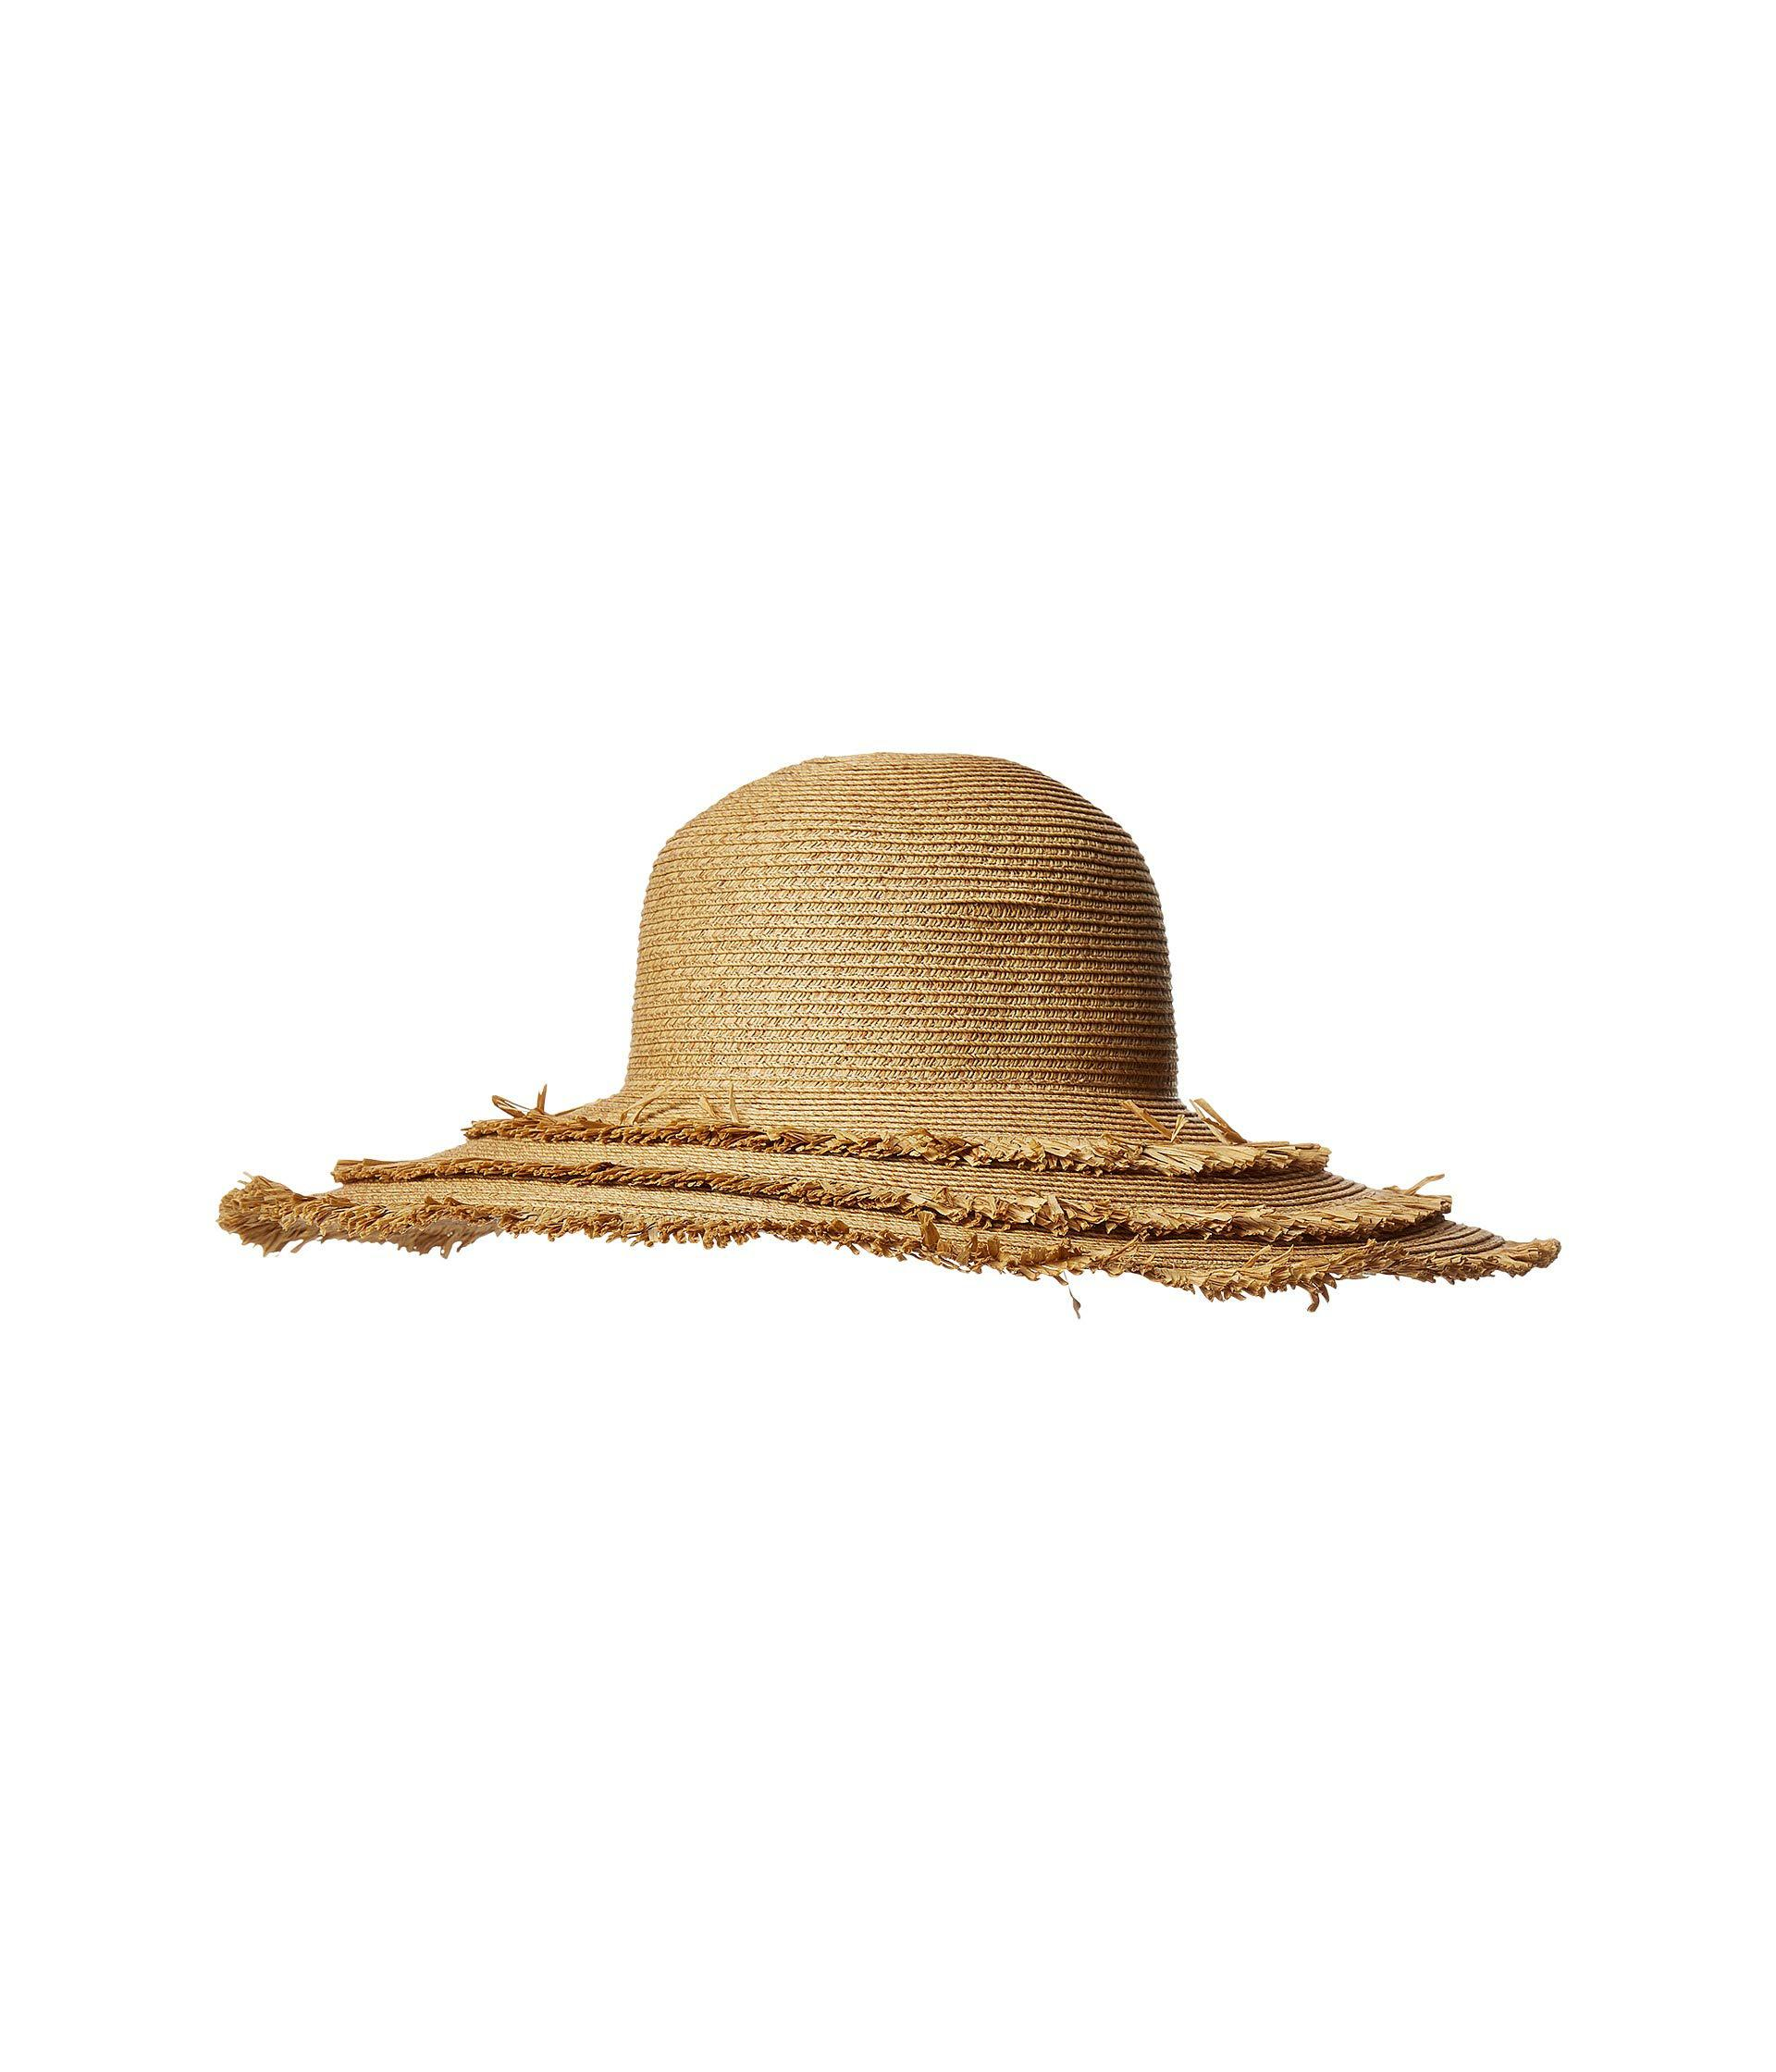 e2d71d6991828 San Diego Hat Company. Women s Ubl6820 - Ultrabraid Floppy With Fray Edges ( natural) Caps